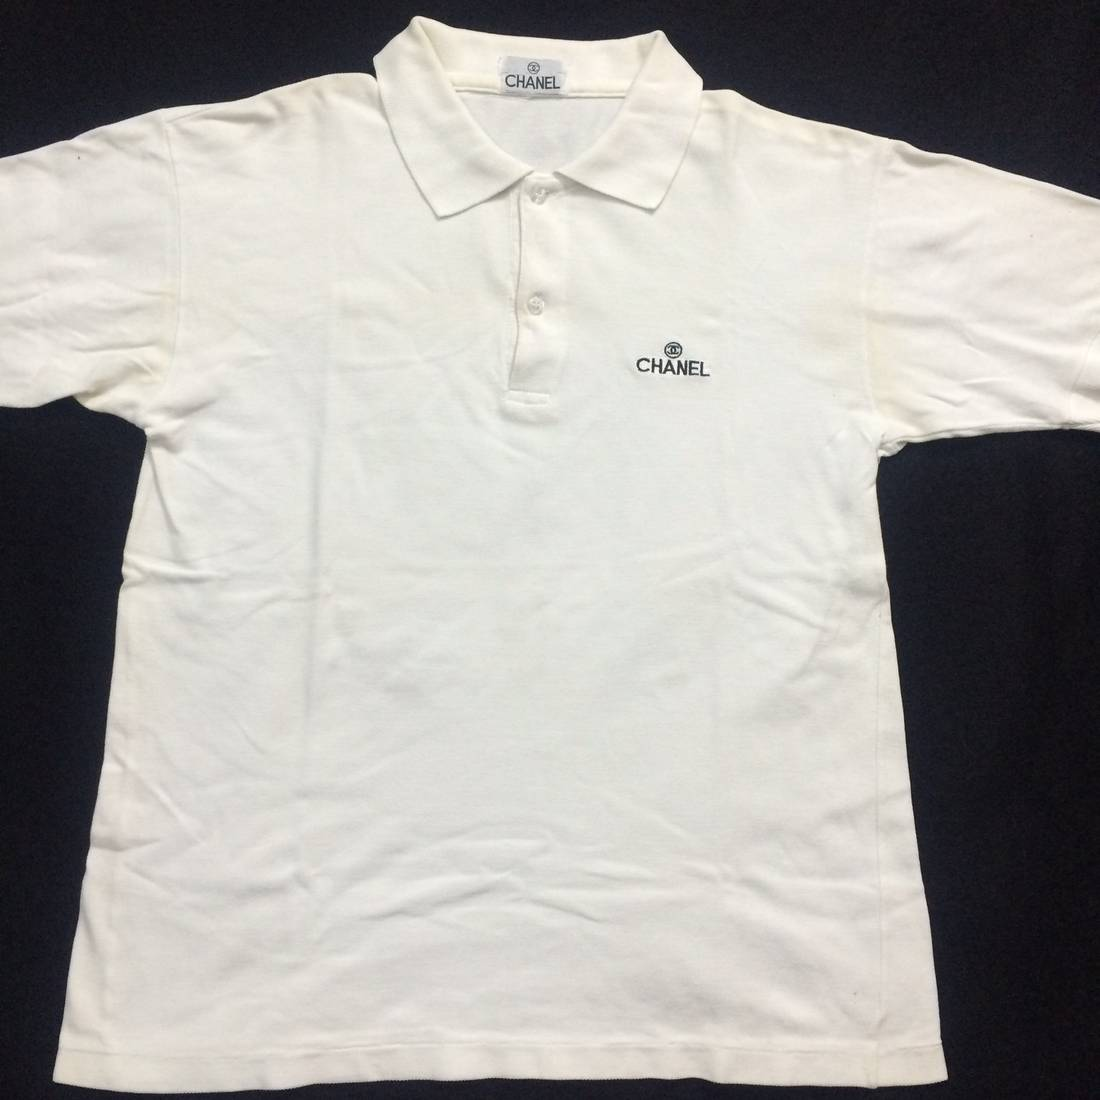 Mens Dior Polo Shirt Sale Chad Crowley Productions